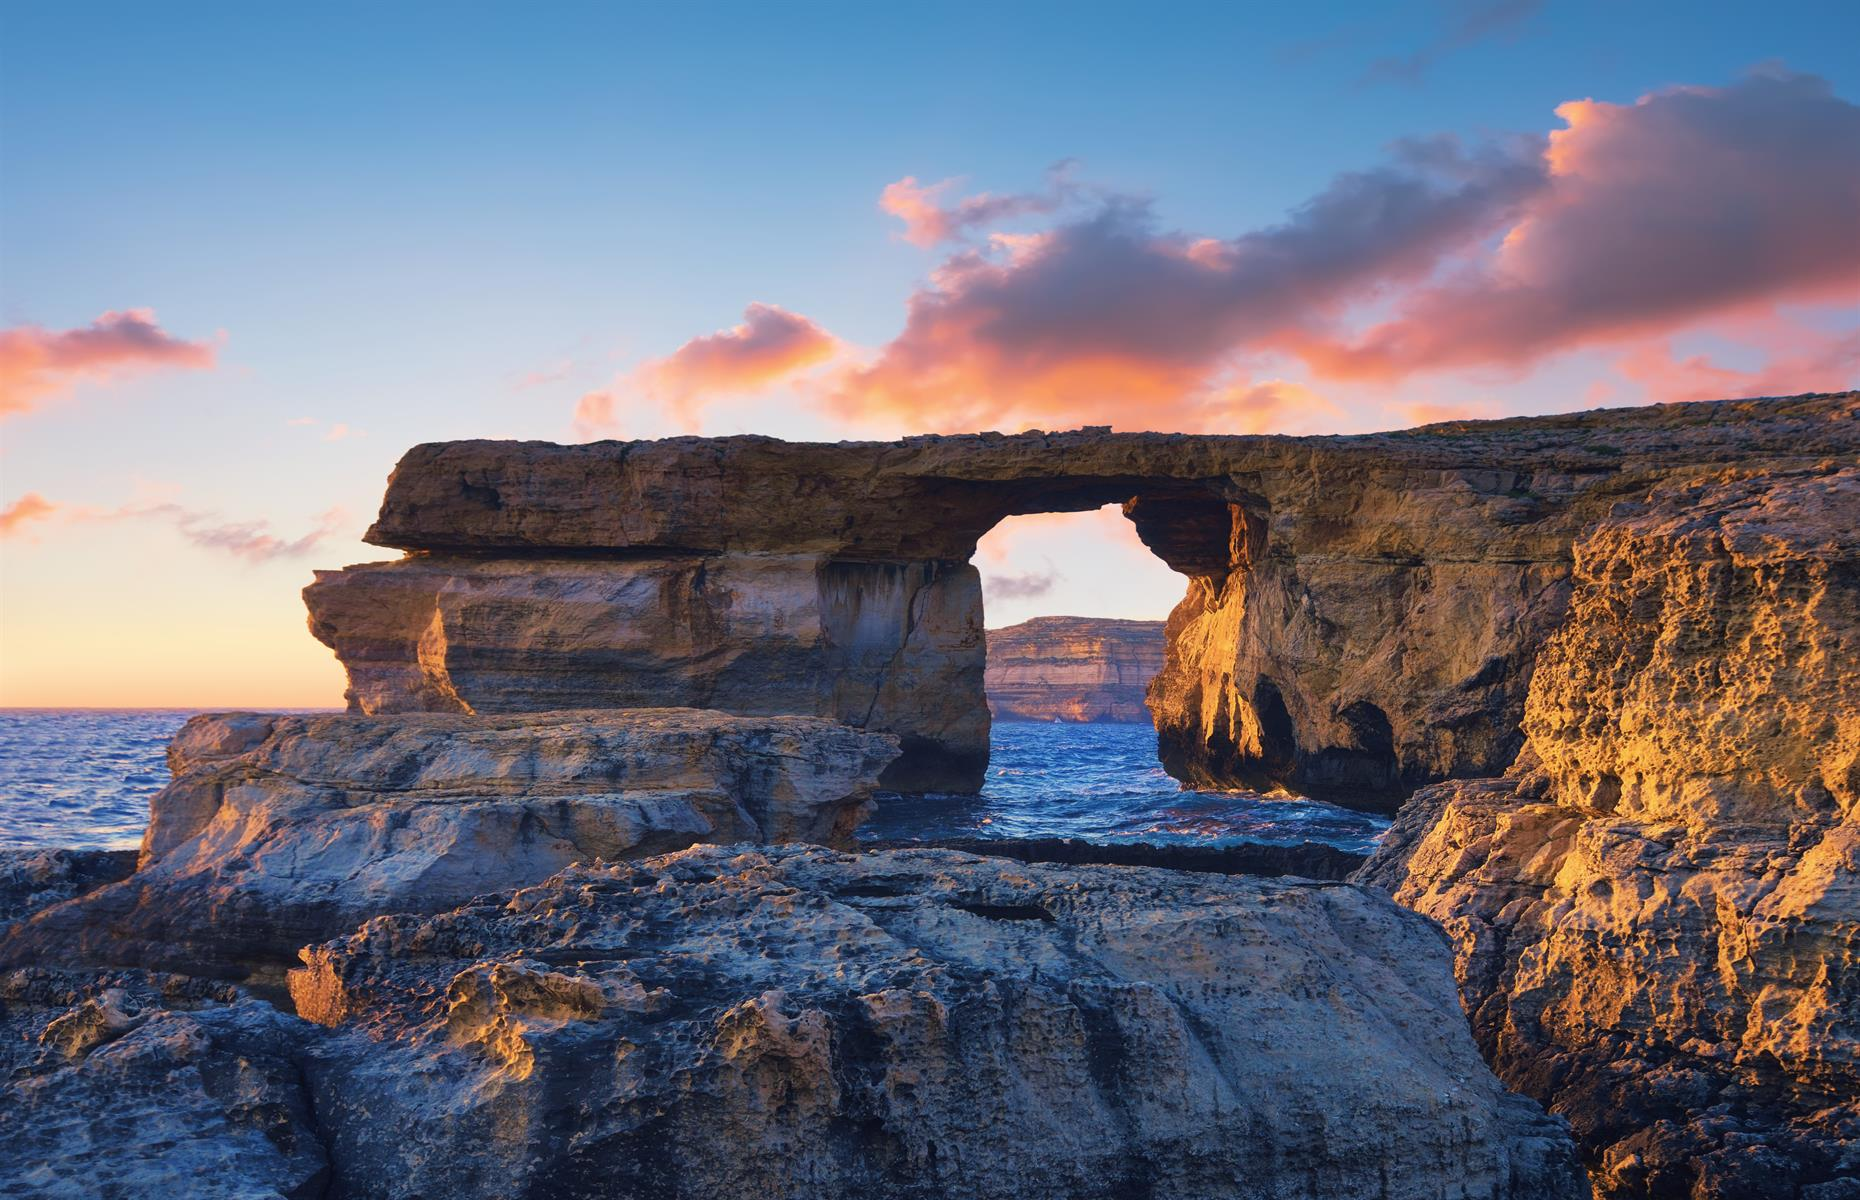 Slide 4 of 33: The Azure Window, a stunning limestone arch near Dwejra Bay on the island of Gozo, was shaped by years of natural coastal erosion. But Mother Nature was also its downfall – in 2017, the rock formation collapsed during a heavy storm. It was a huge draw for tourists visiting the island, especially at sunset.